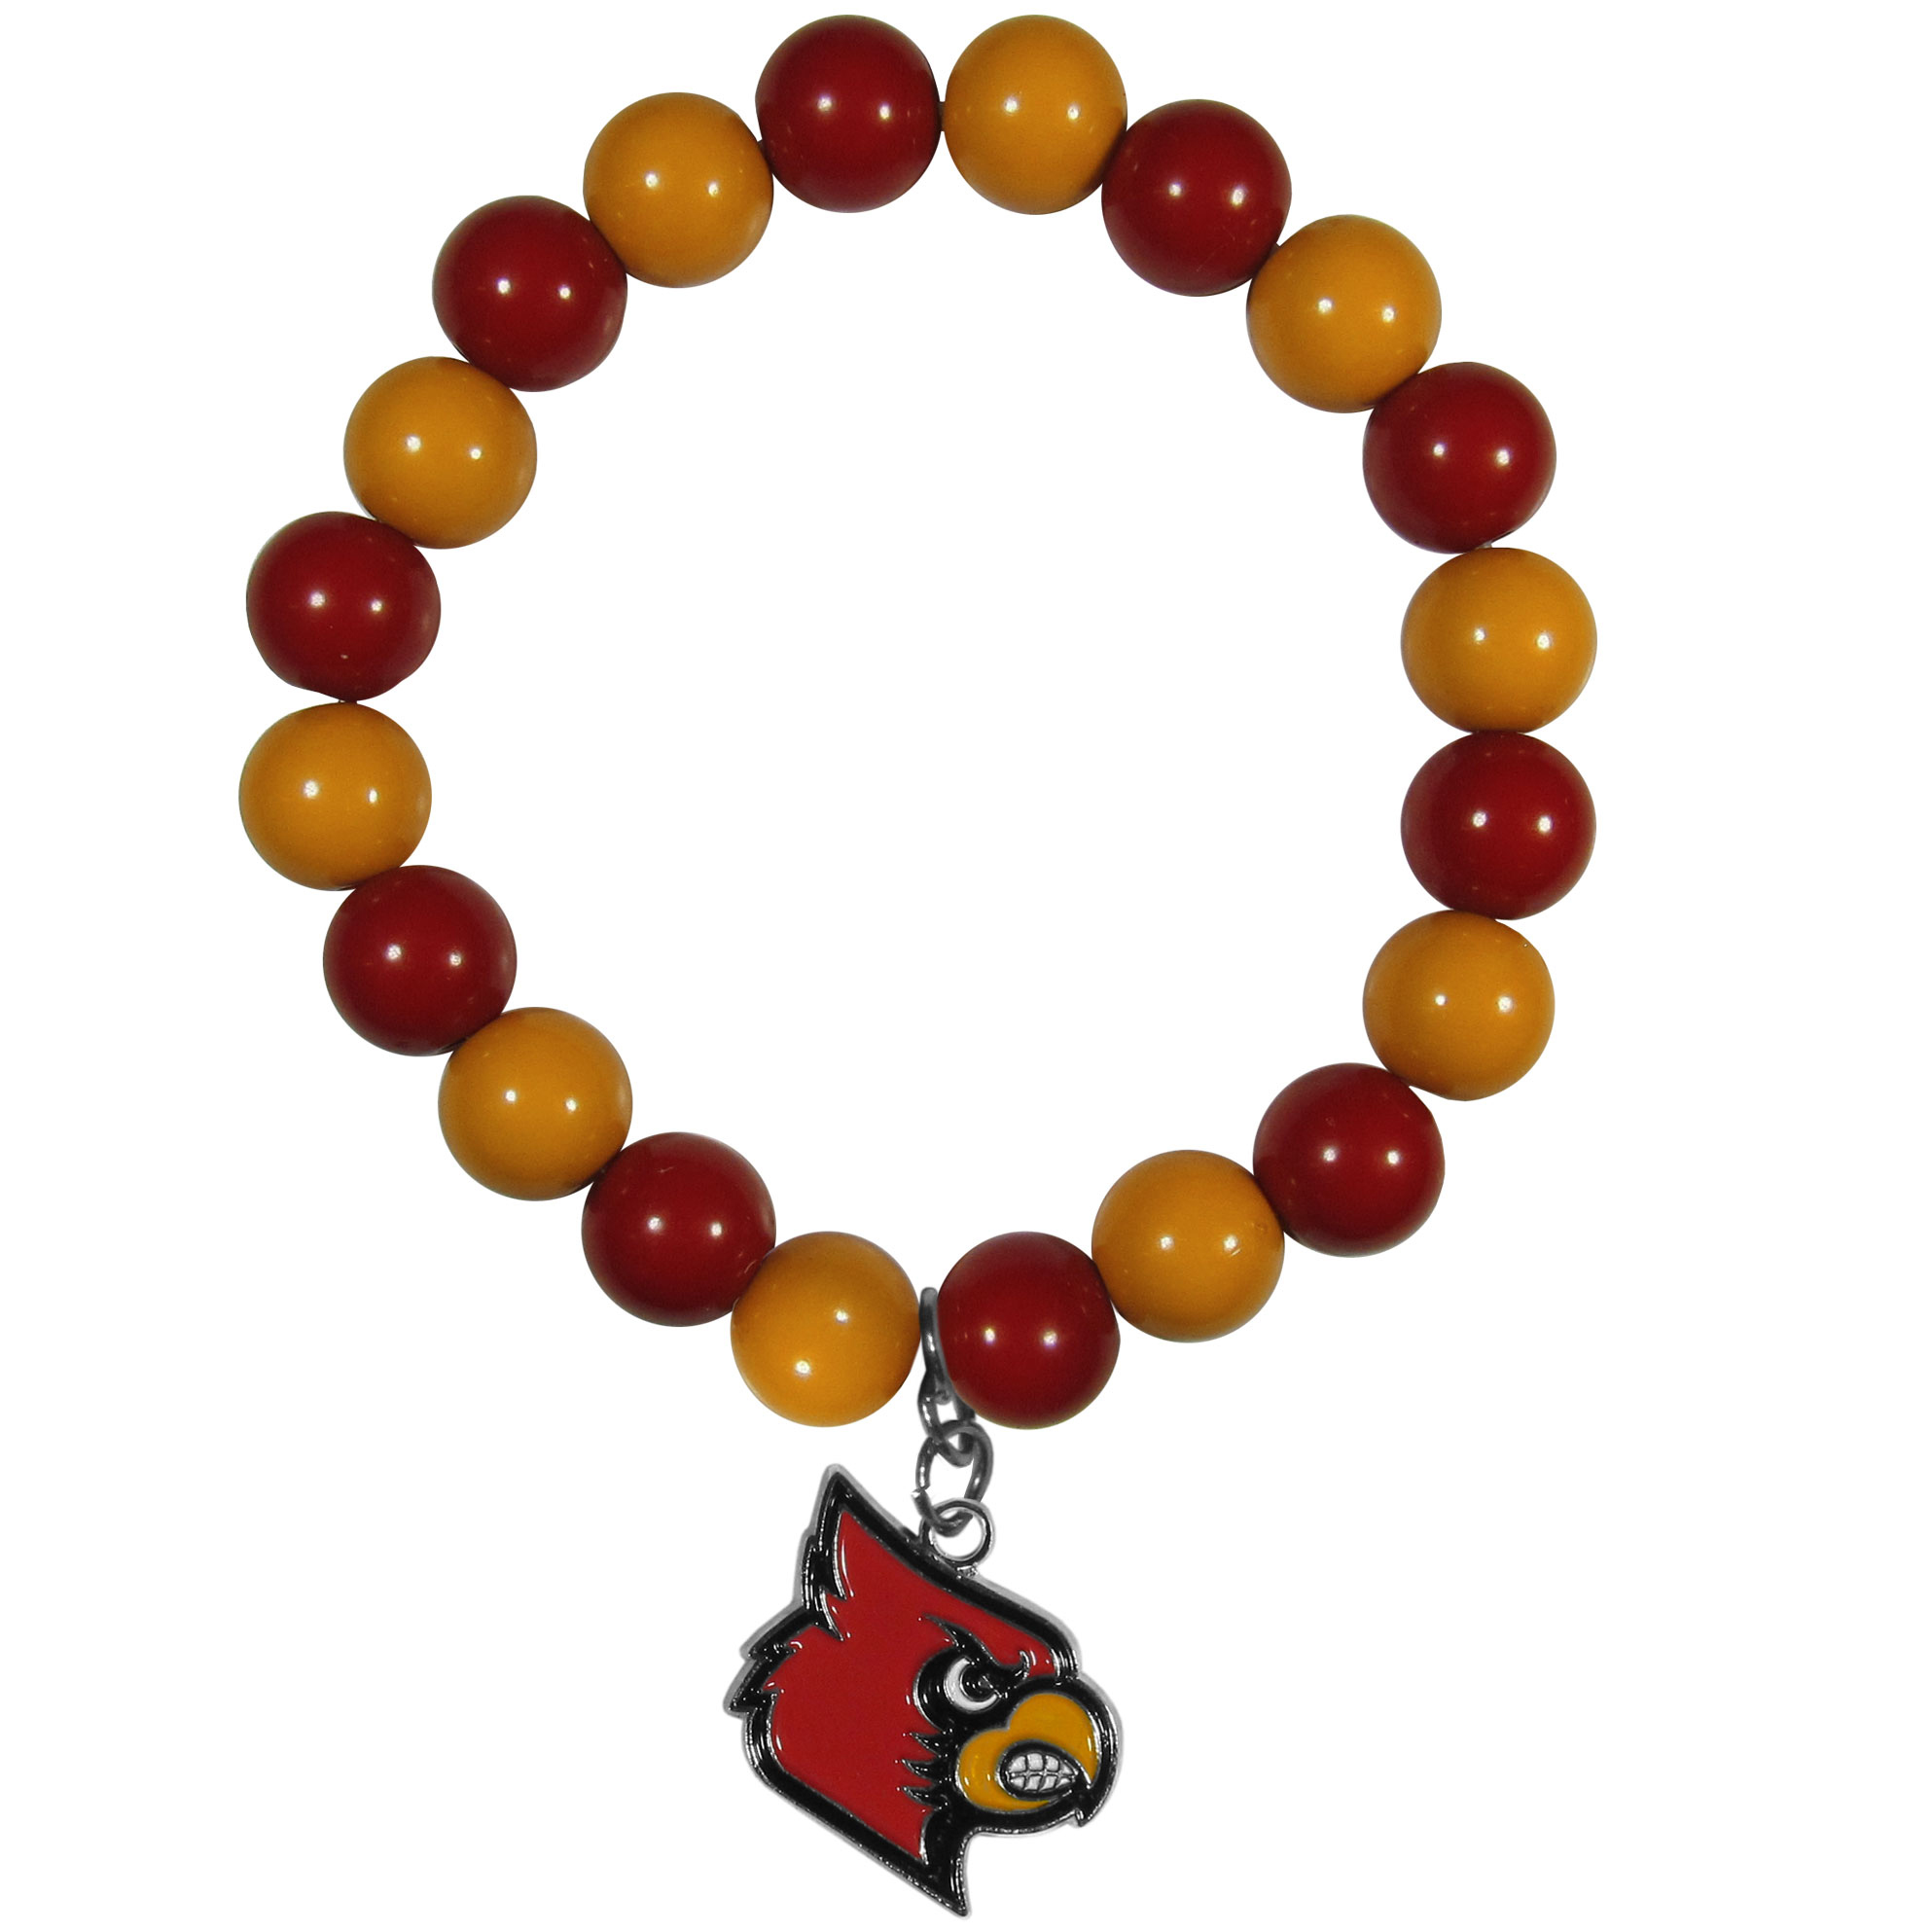 Louisville Cardinals Fan Bead Bracelet - Flash your Louisville Cardinals spirit with this bright stretch bracelet. This new bracelet features multicolored team beads on stretch cord with a nickel-free enameled chrome team charm. This bracelet adds the perfect pop of color to your game day accessories.